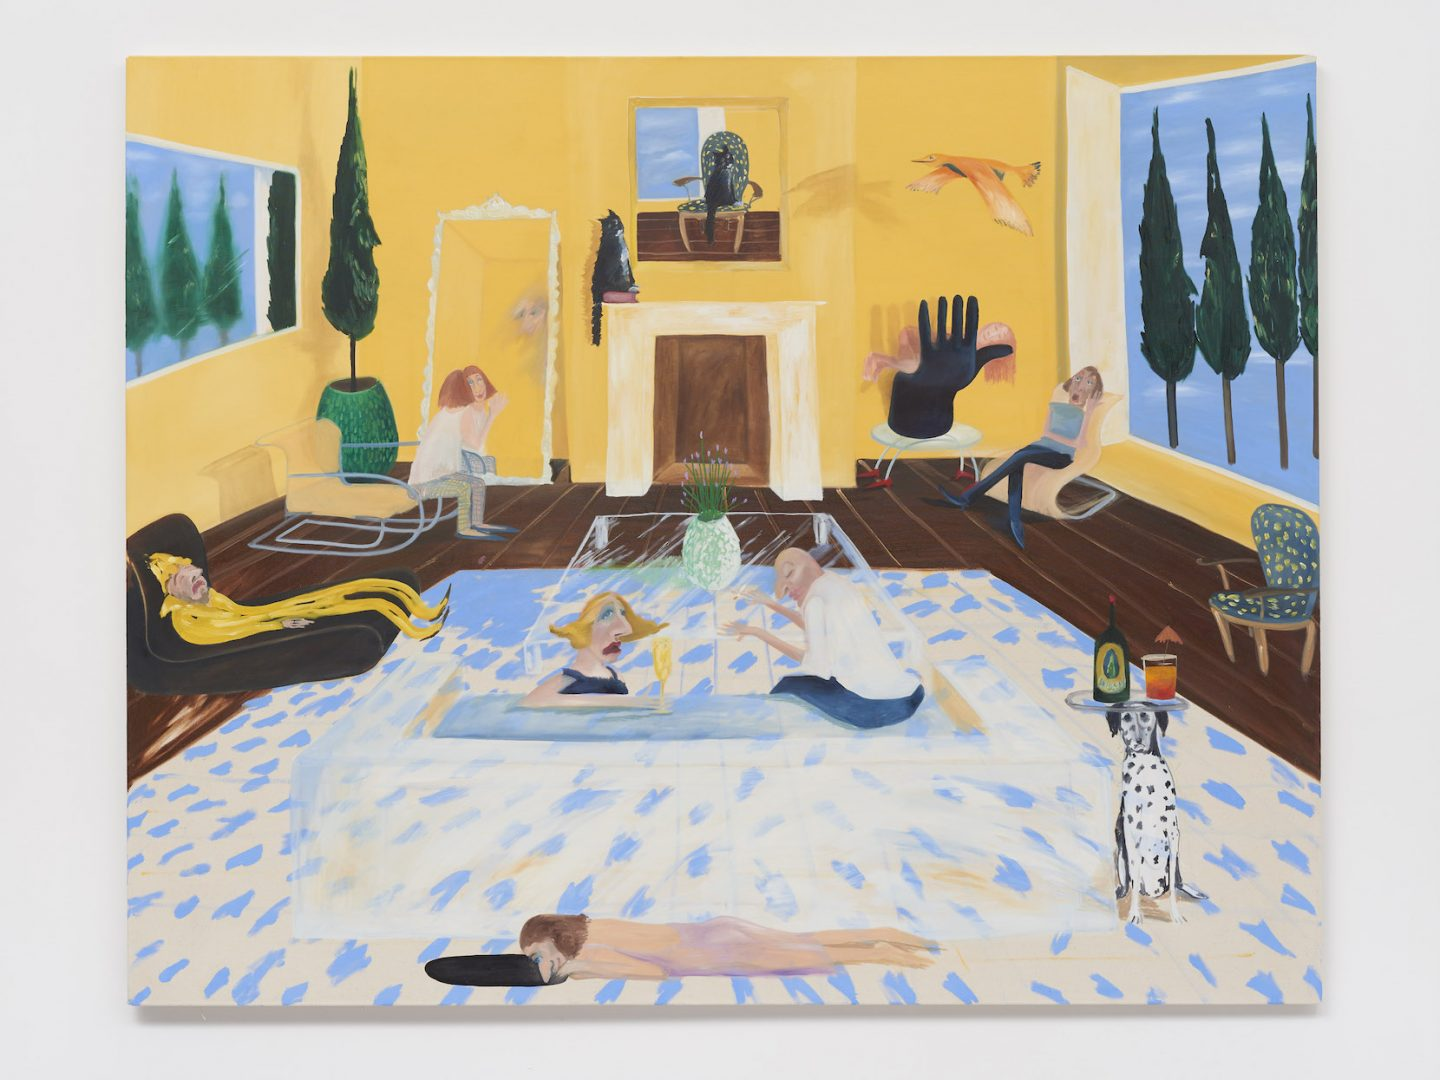 Mary Stephenson, The Party, 2019, Oil on canvas